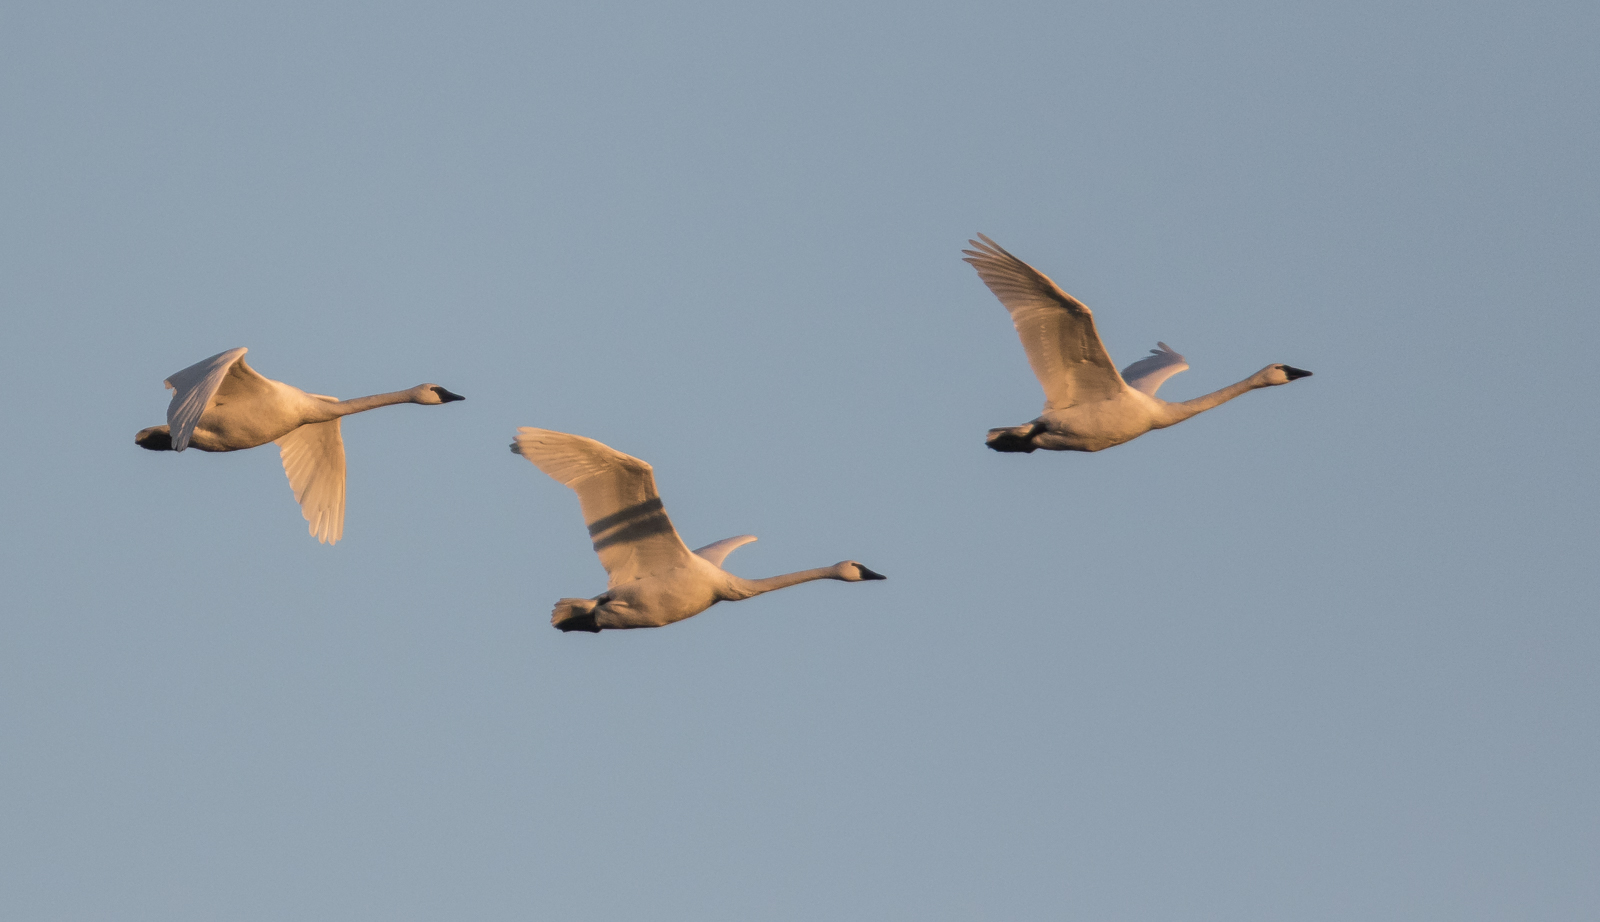 Great Day For Tundra Swans On Lake >> mattamuskeet national wildlife refuge | Roads End Naturalist